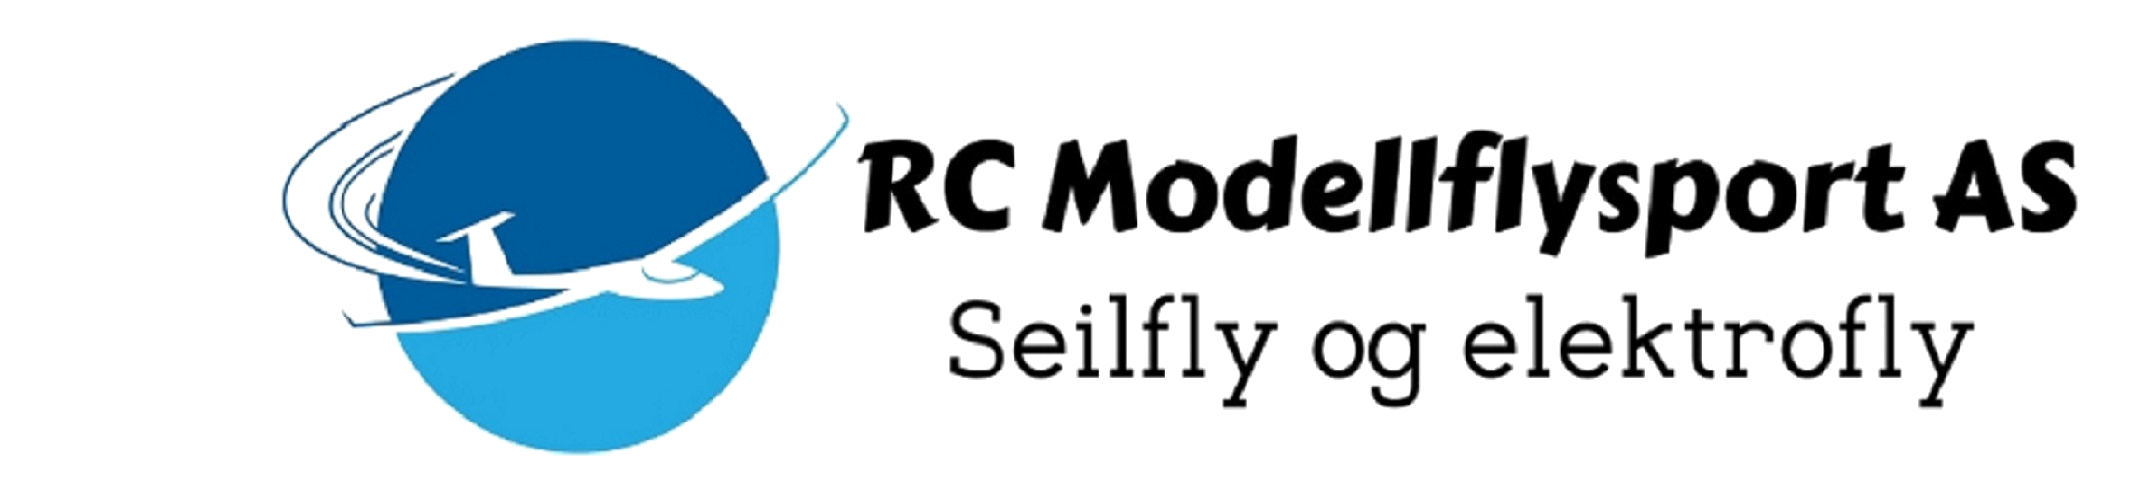 RC Modellflysport